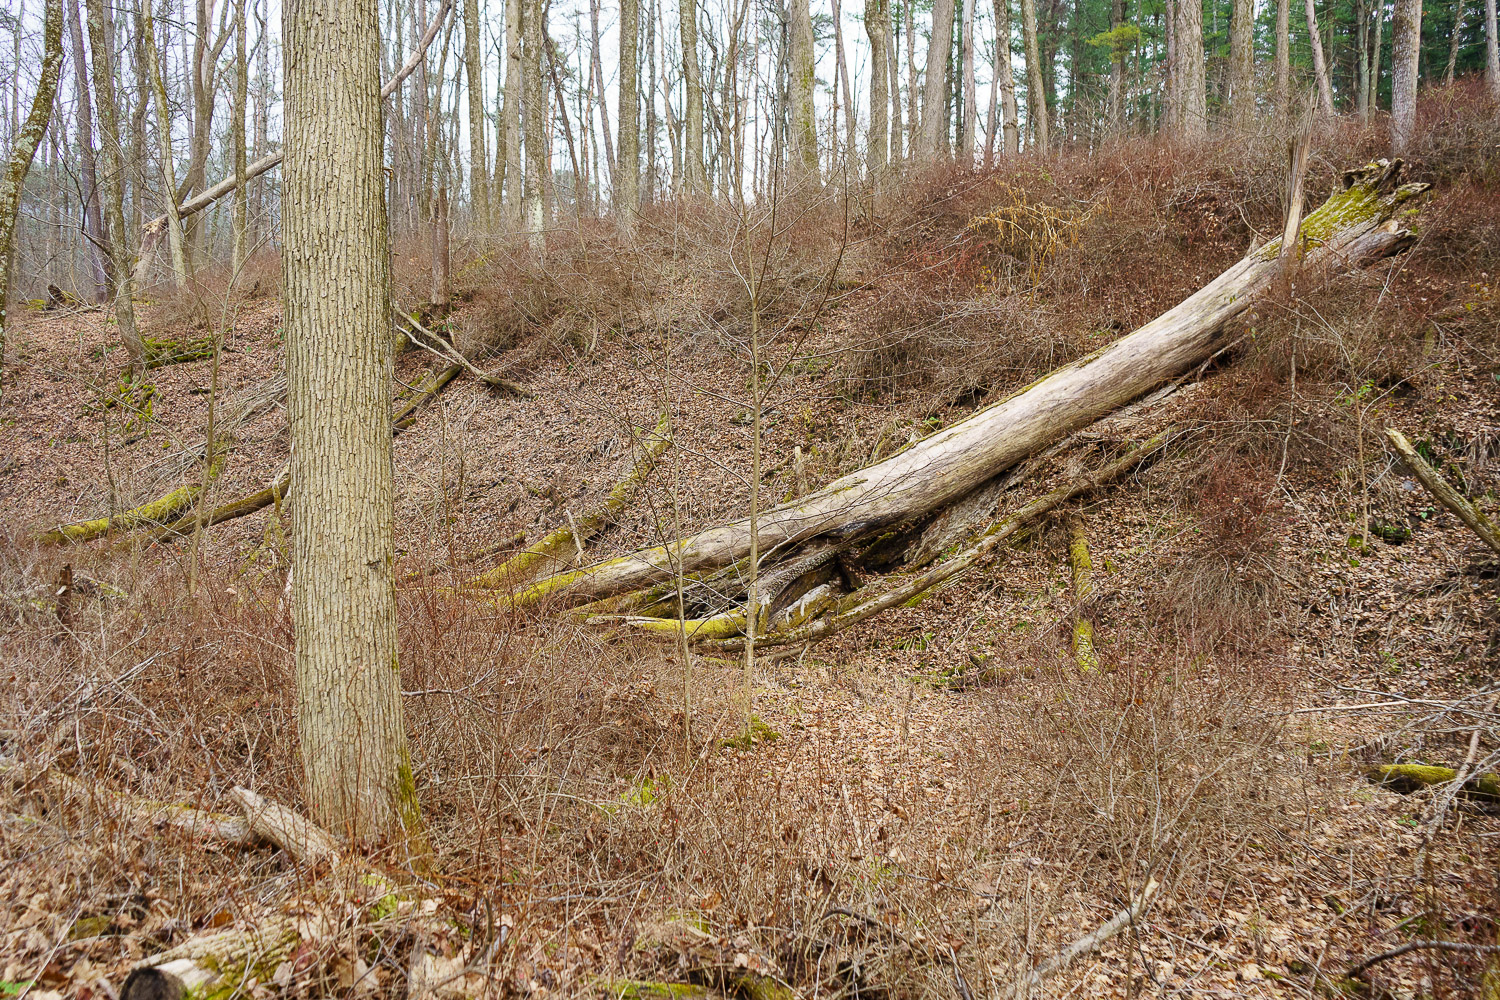 Trees have fallen, some due to erosion, beside the trail